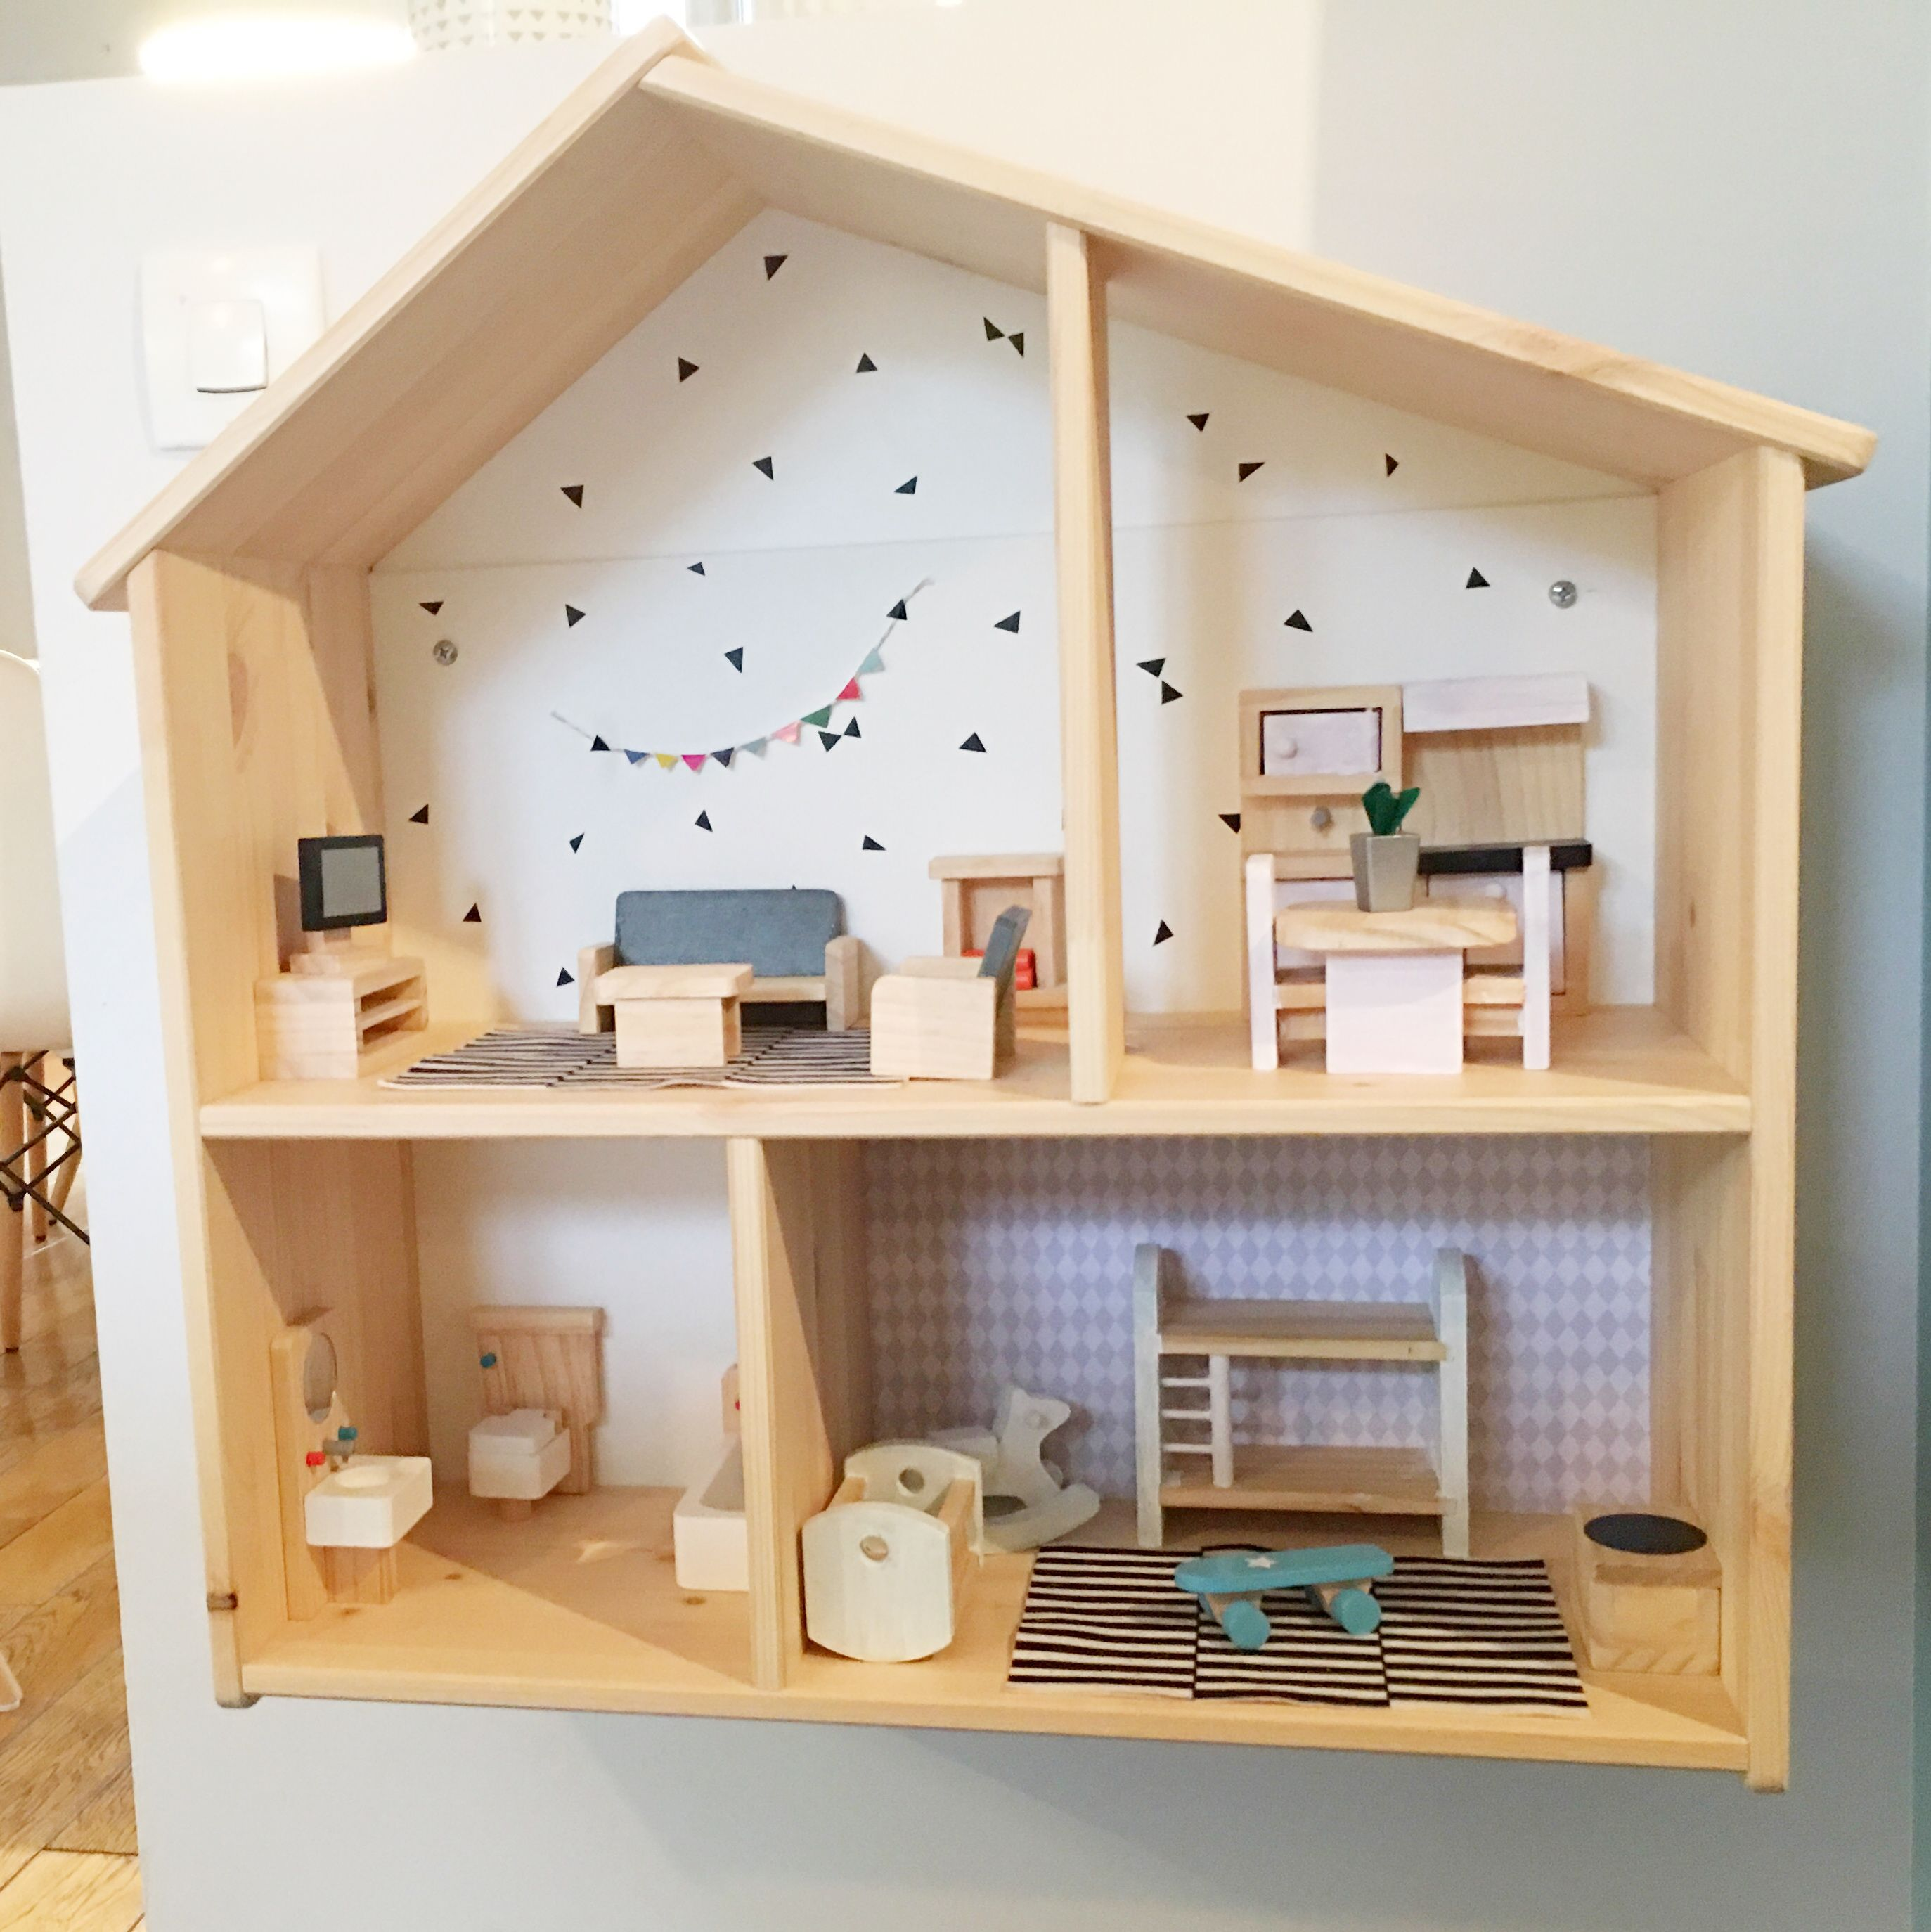 ikea dolls house furniture. Diy Dollhouse Ikea Dolls House Furniture